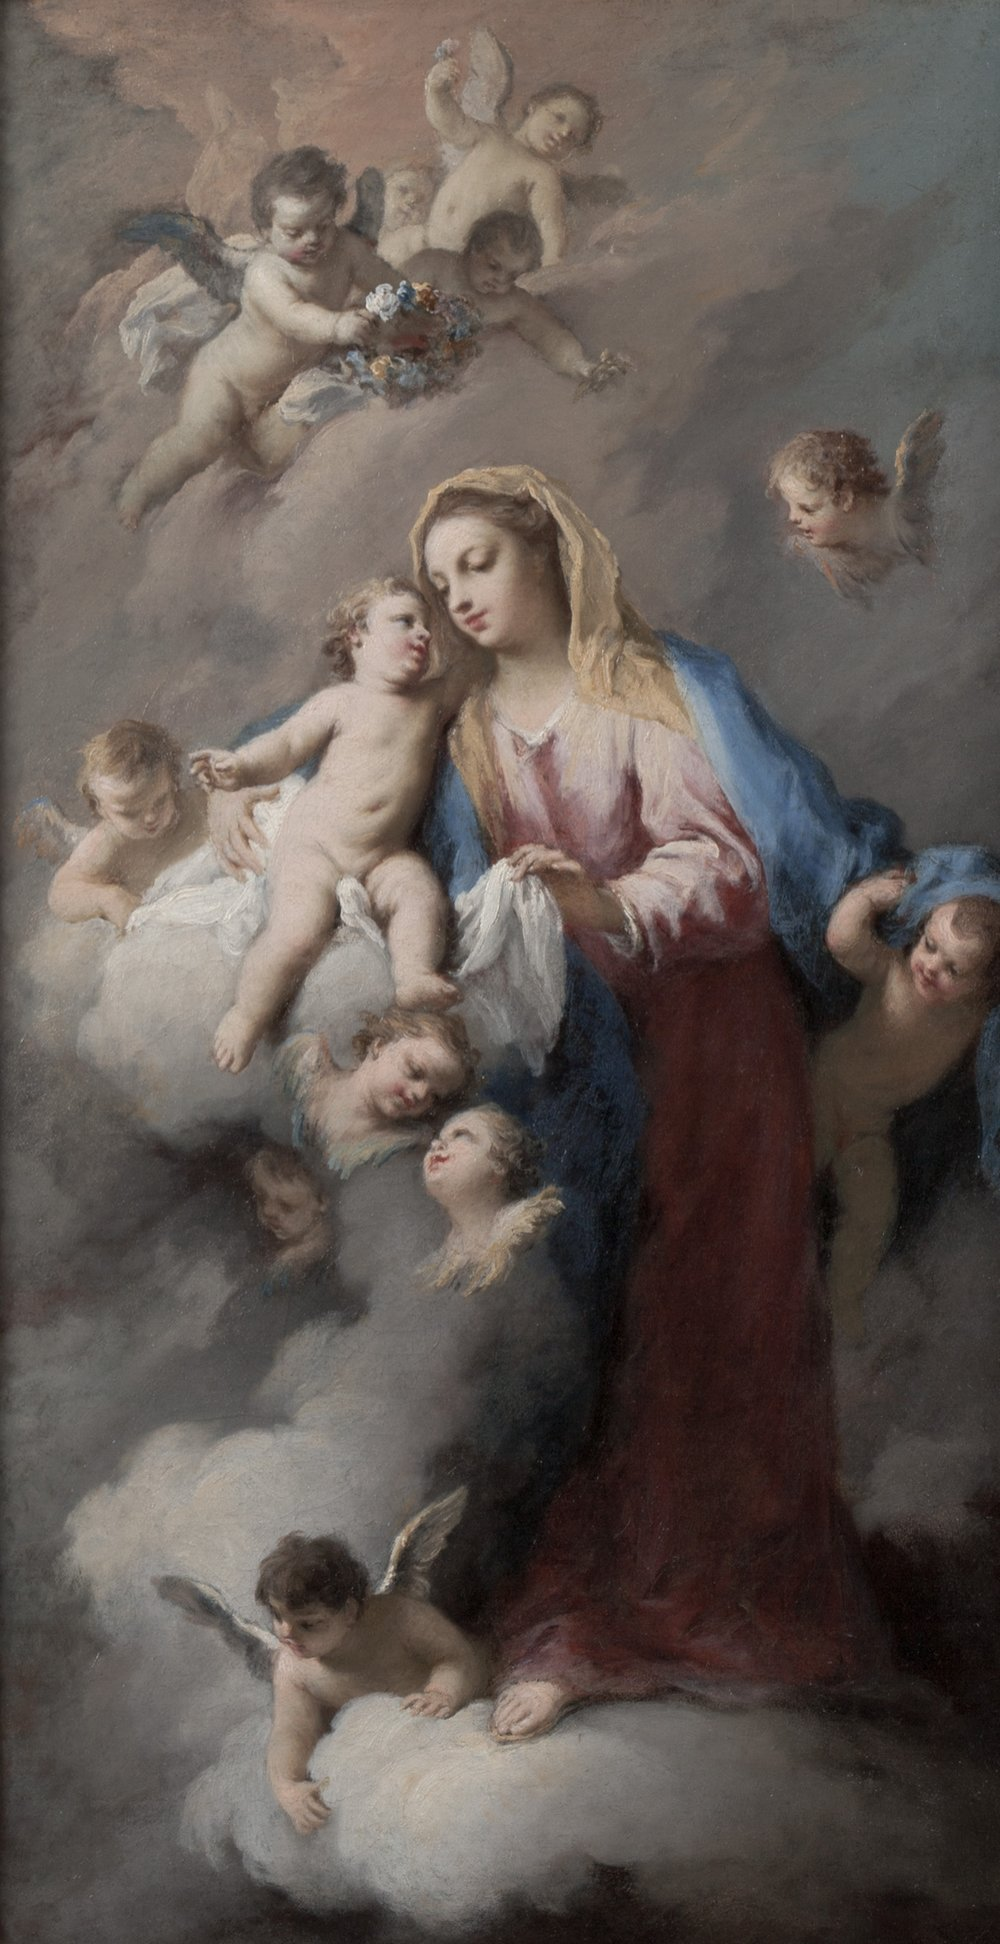 Jacopo   Amigoni   Madonna and Child in the Clouds